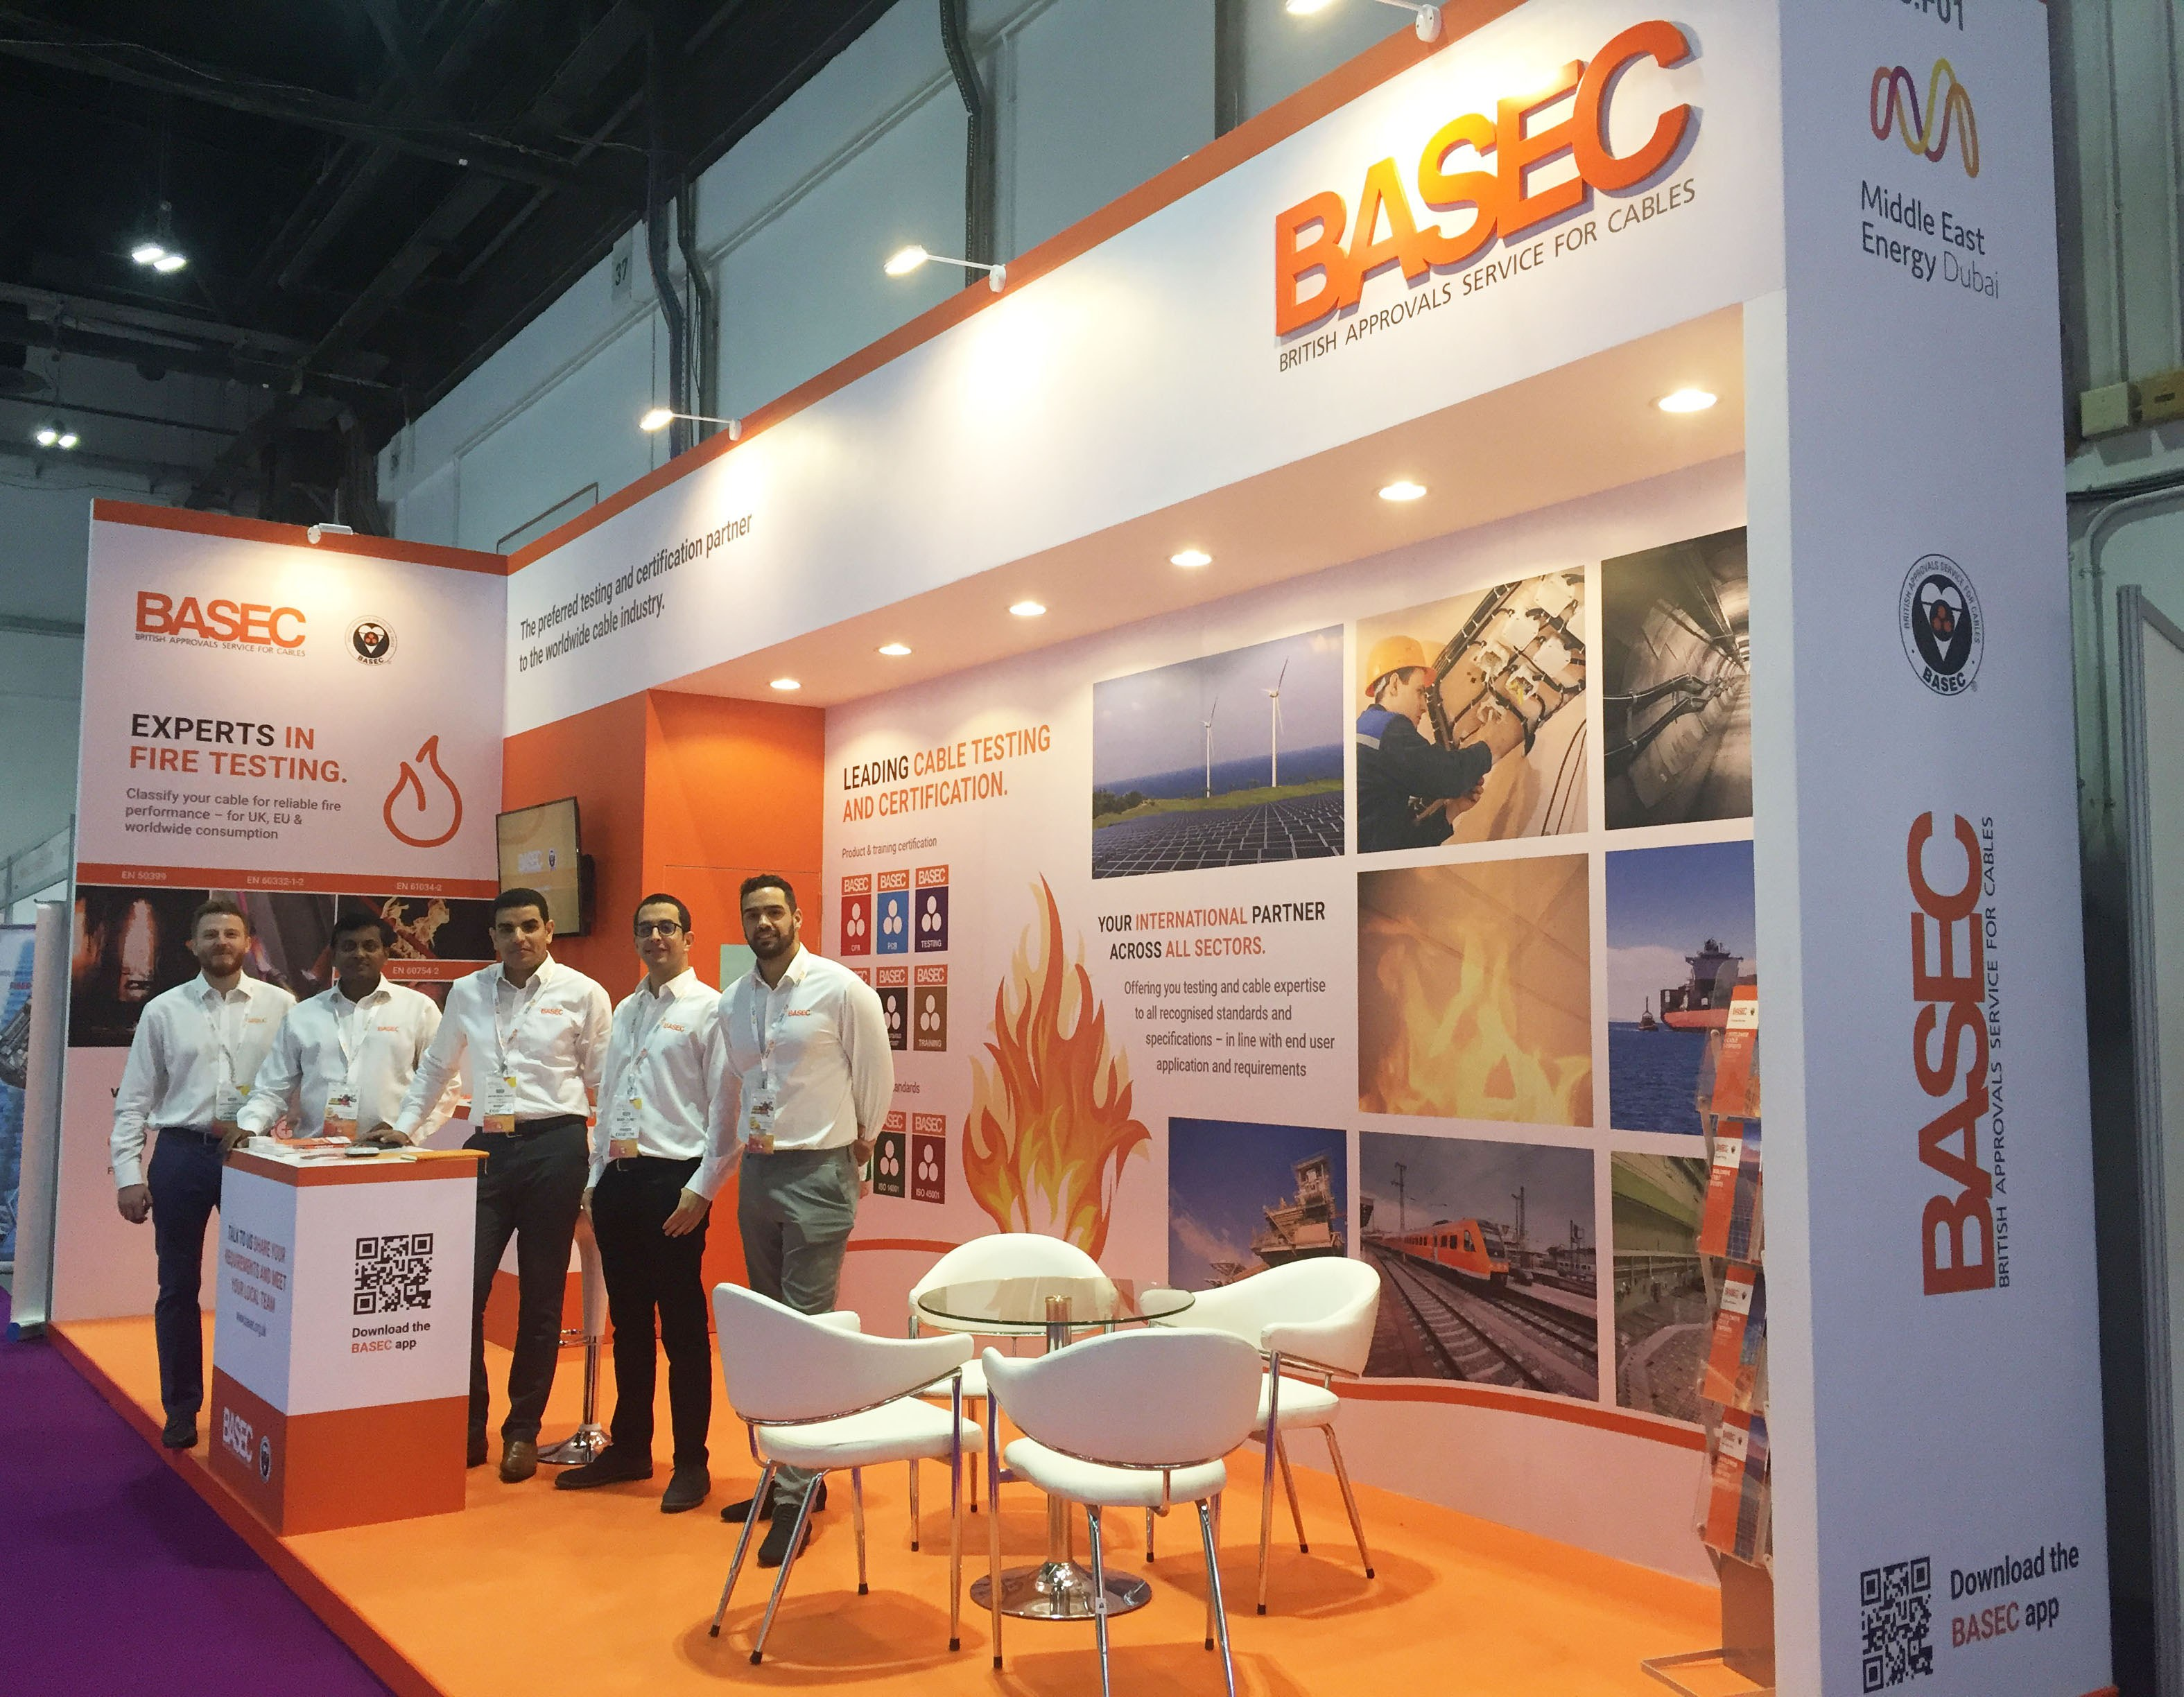 BASEC at Middle East Energy 2020